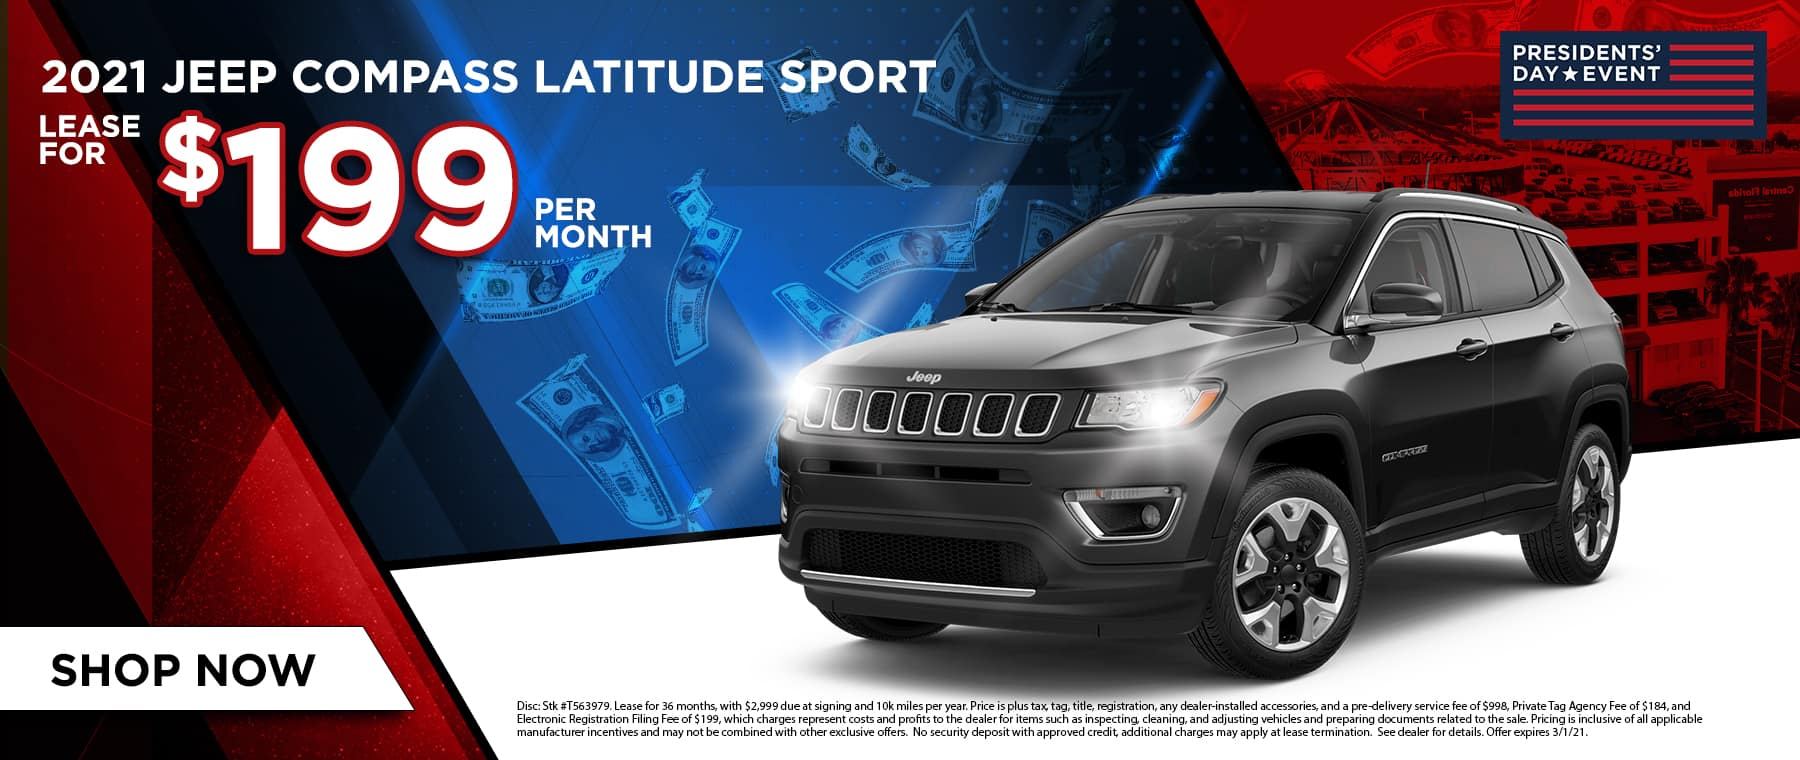 2021 Jeep compass Latitude Sport